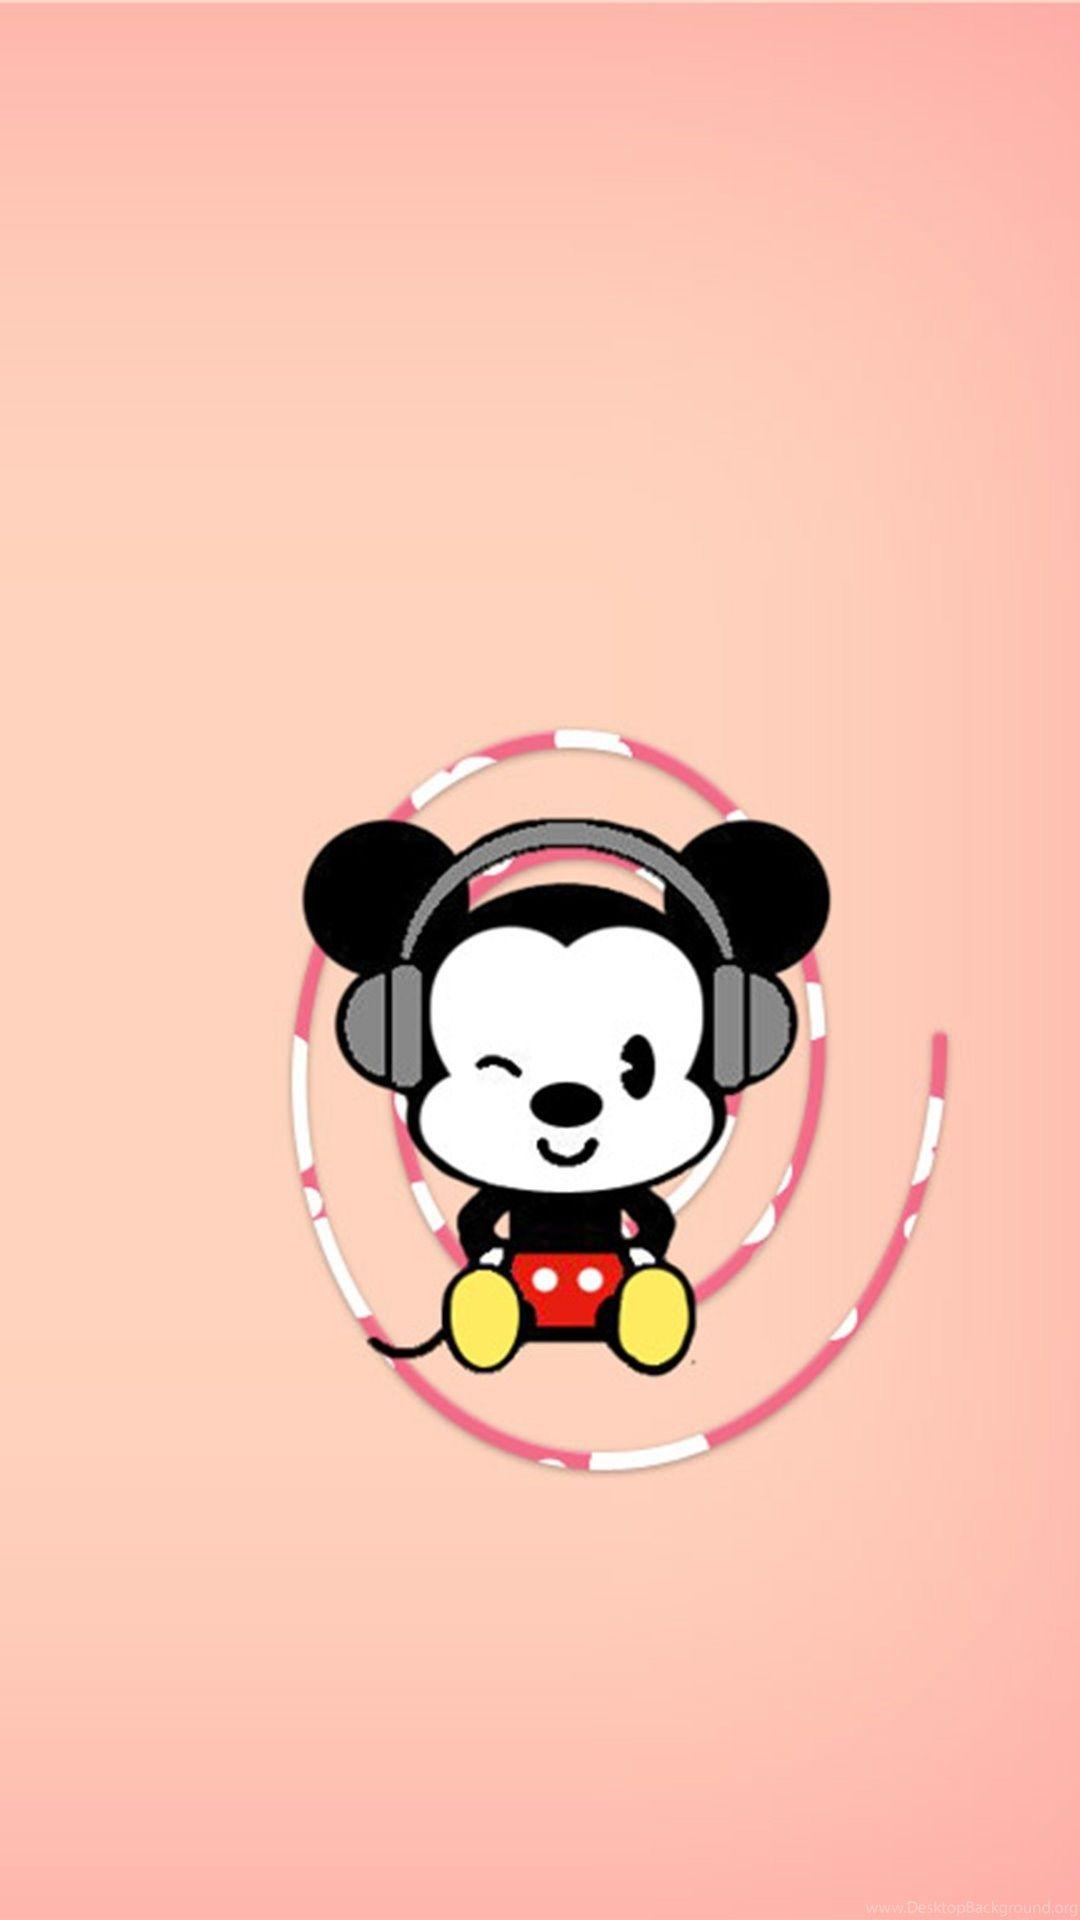 Old Mickey Mouse Wallpapers - Wallpaper Cave